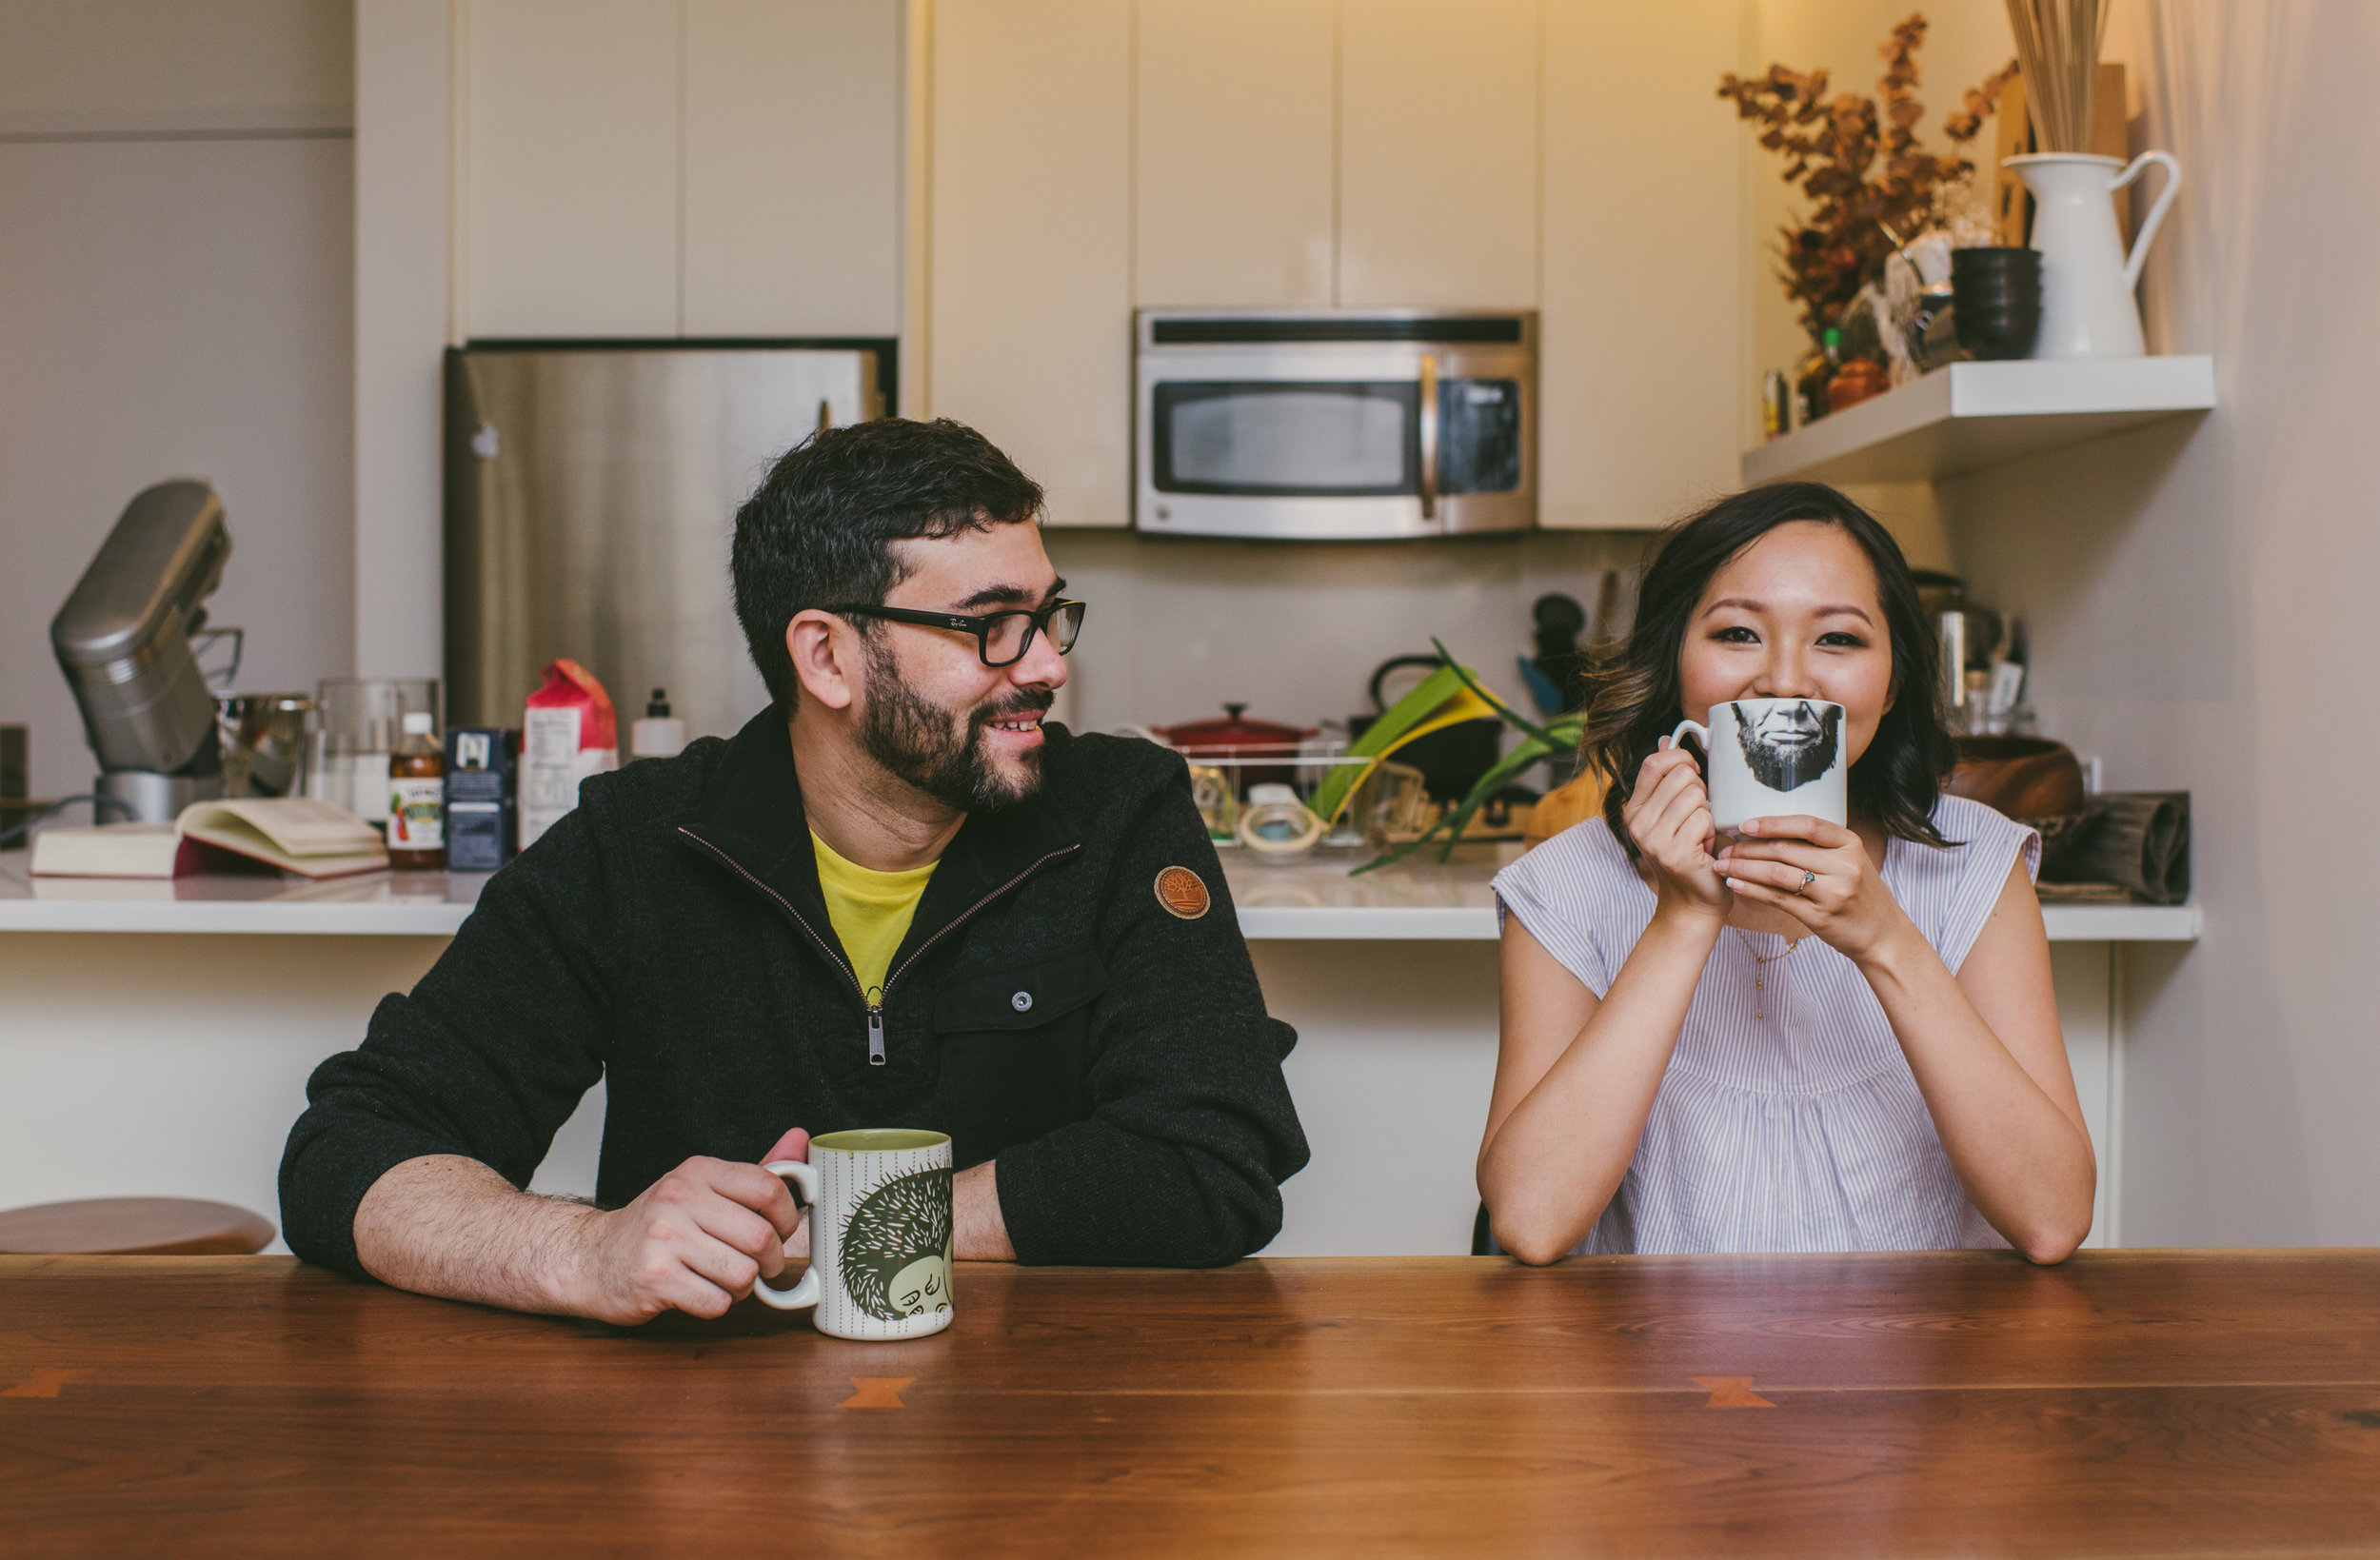 LILY & ANDREW - ENGAGED - TWOTWENTY by CHI-CHI AGBIM-22.jpg